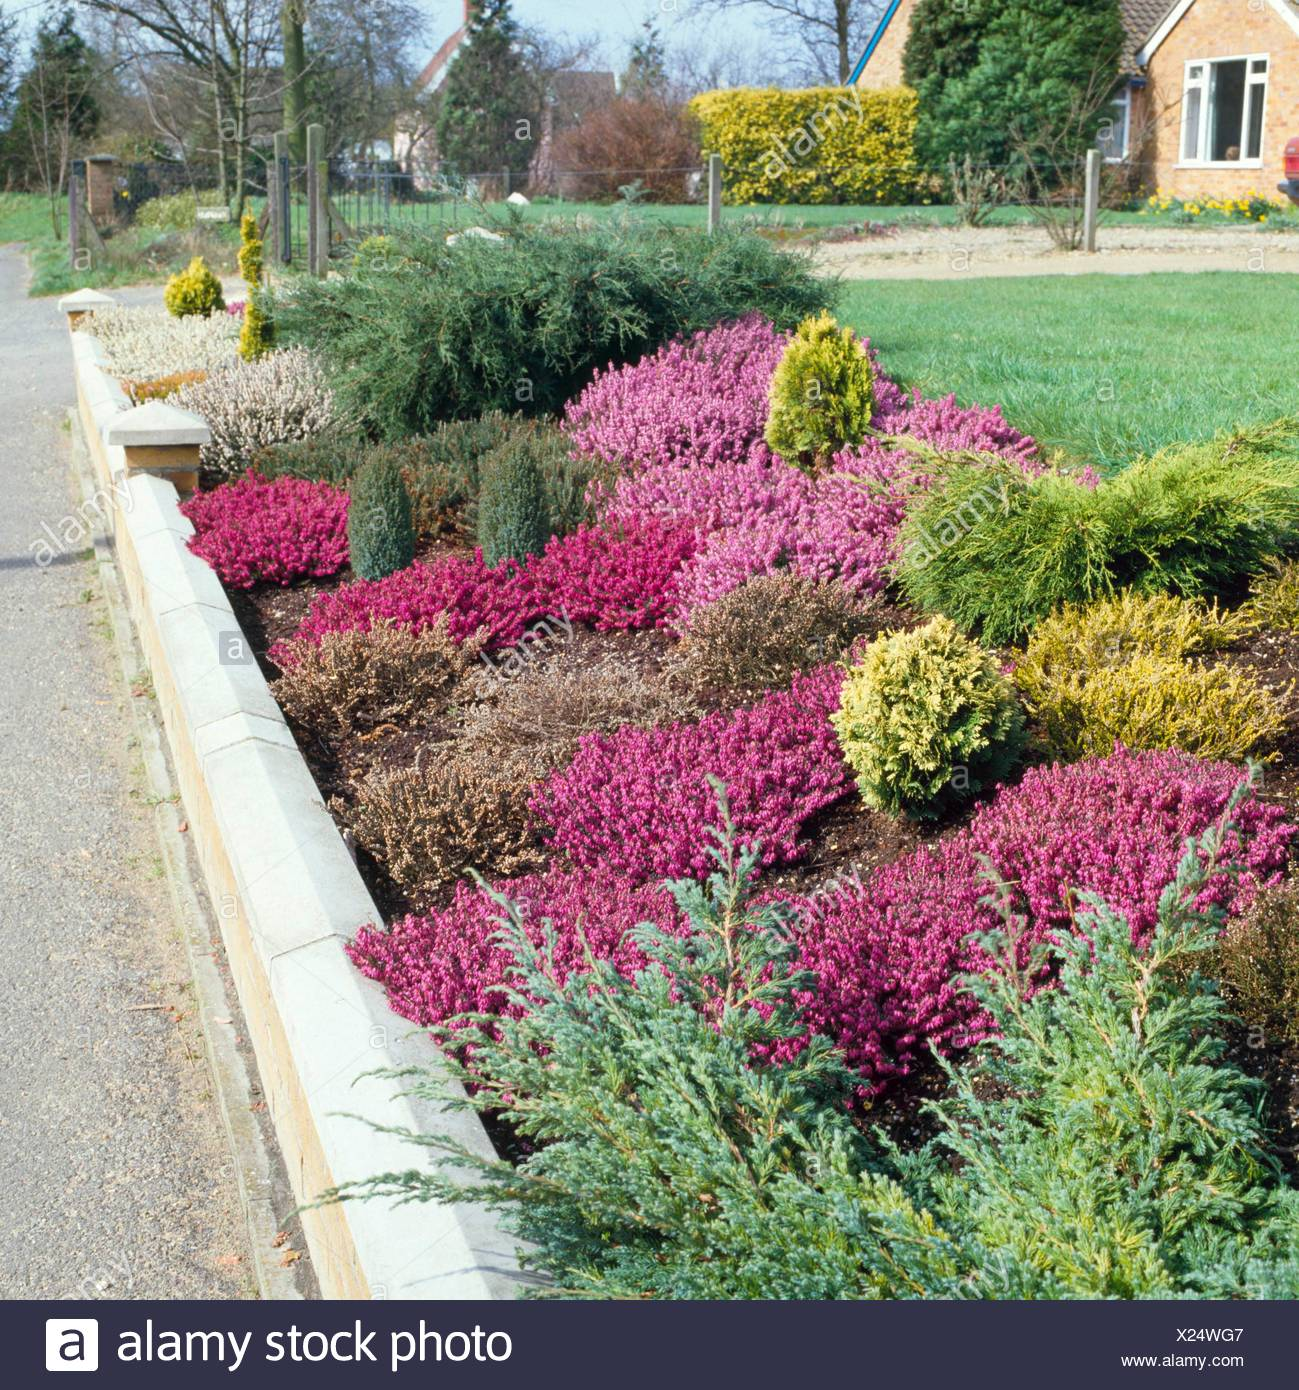 Conifer and Heather Garden   CHG025721 - Stock Image